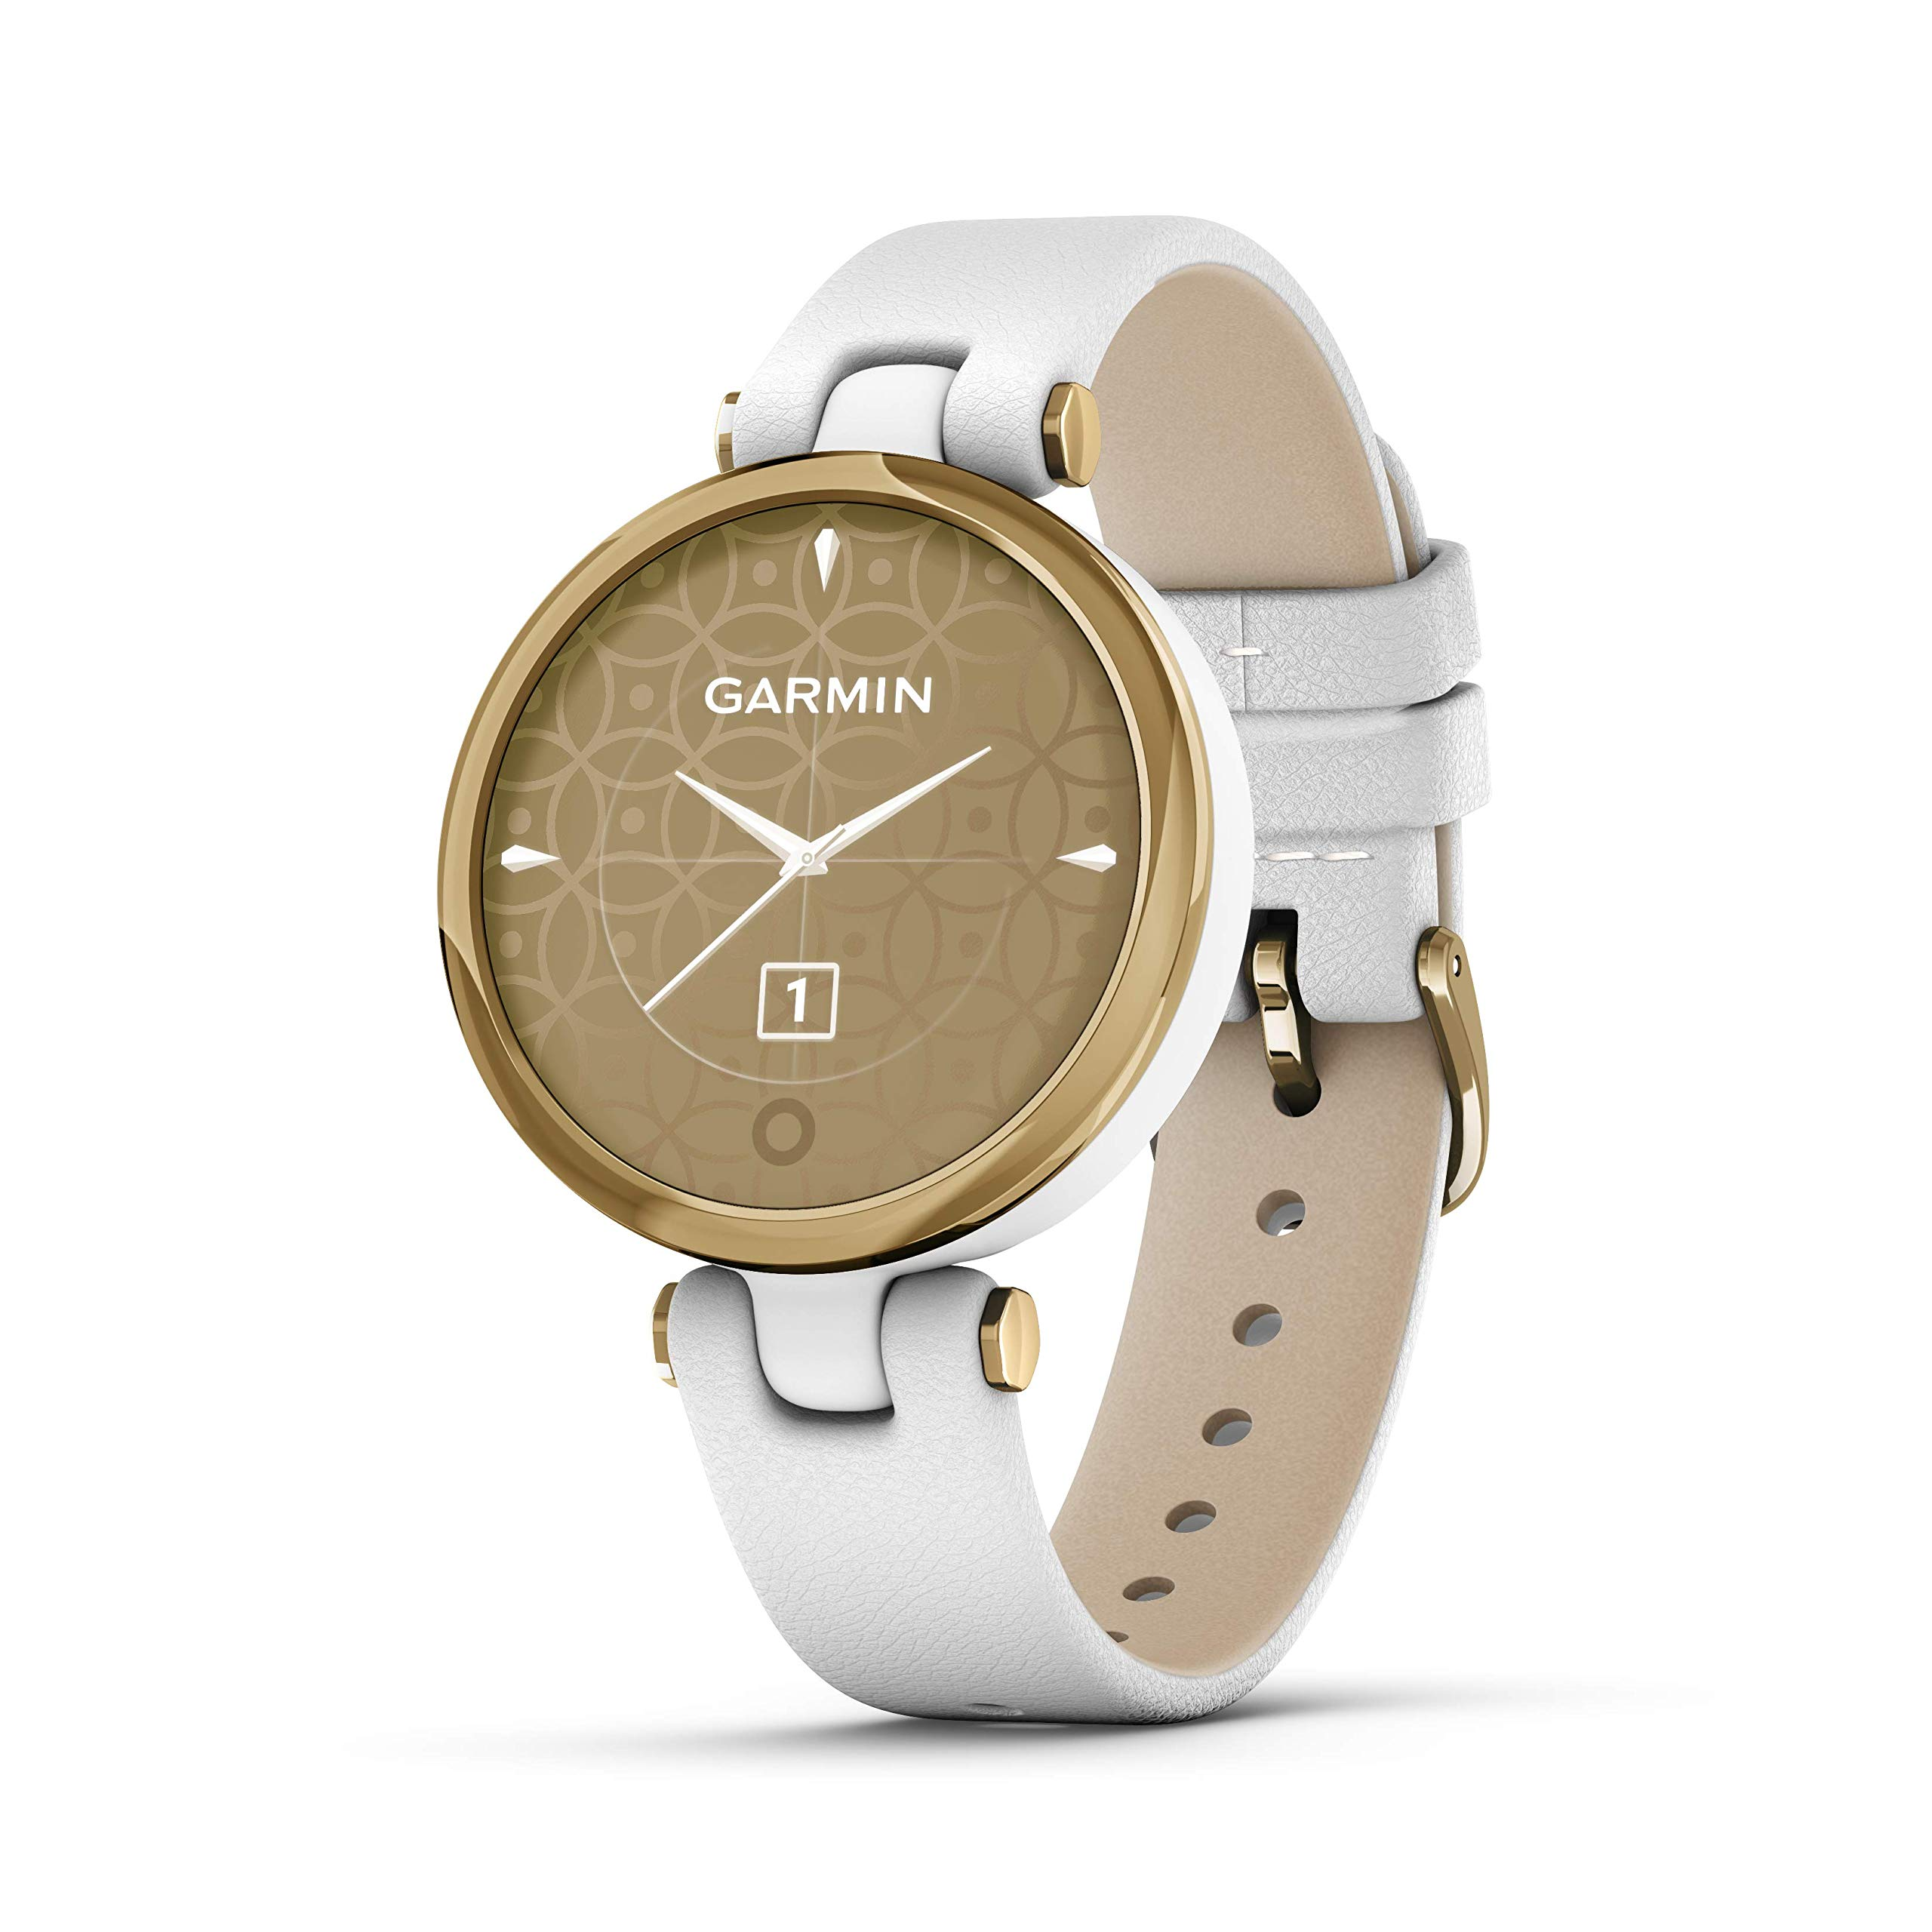 Garmin Lily, Small GPS Smartwatch with Touchscreen and Patterned Lens, Light Gold with White Leather Band